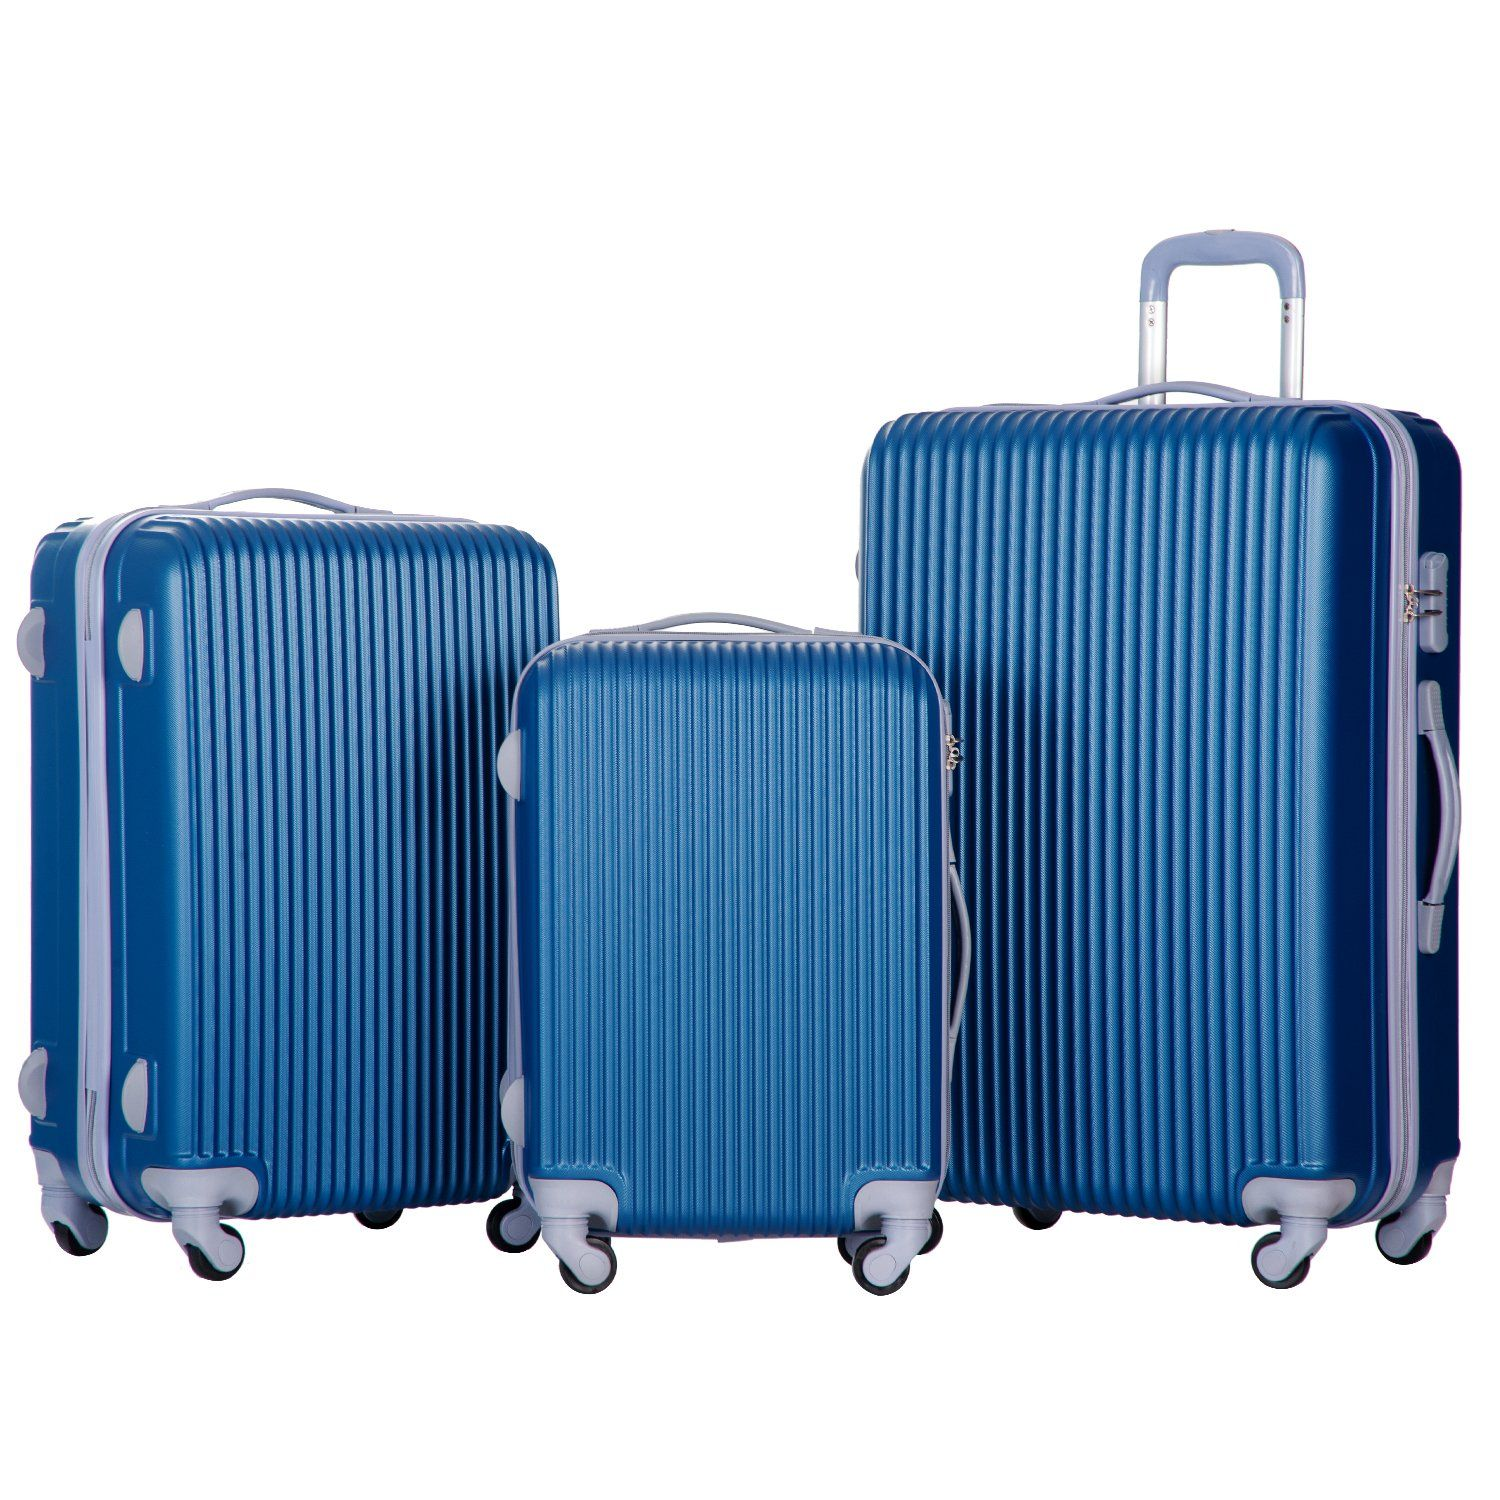 Merax Newest 3 Piece Luggage Suitcase Spinner Set ABS Material (Lake Blue)